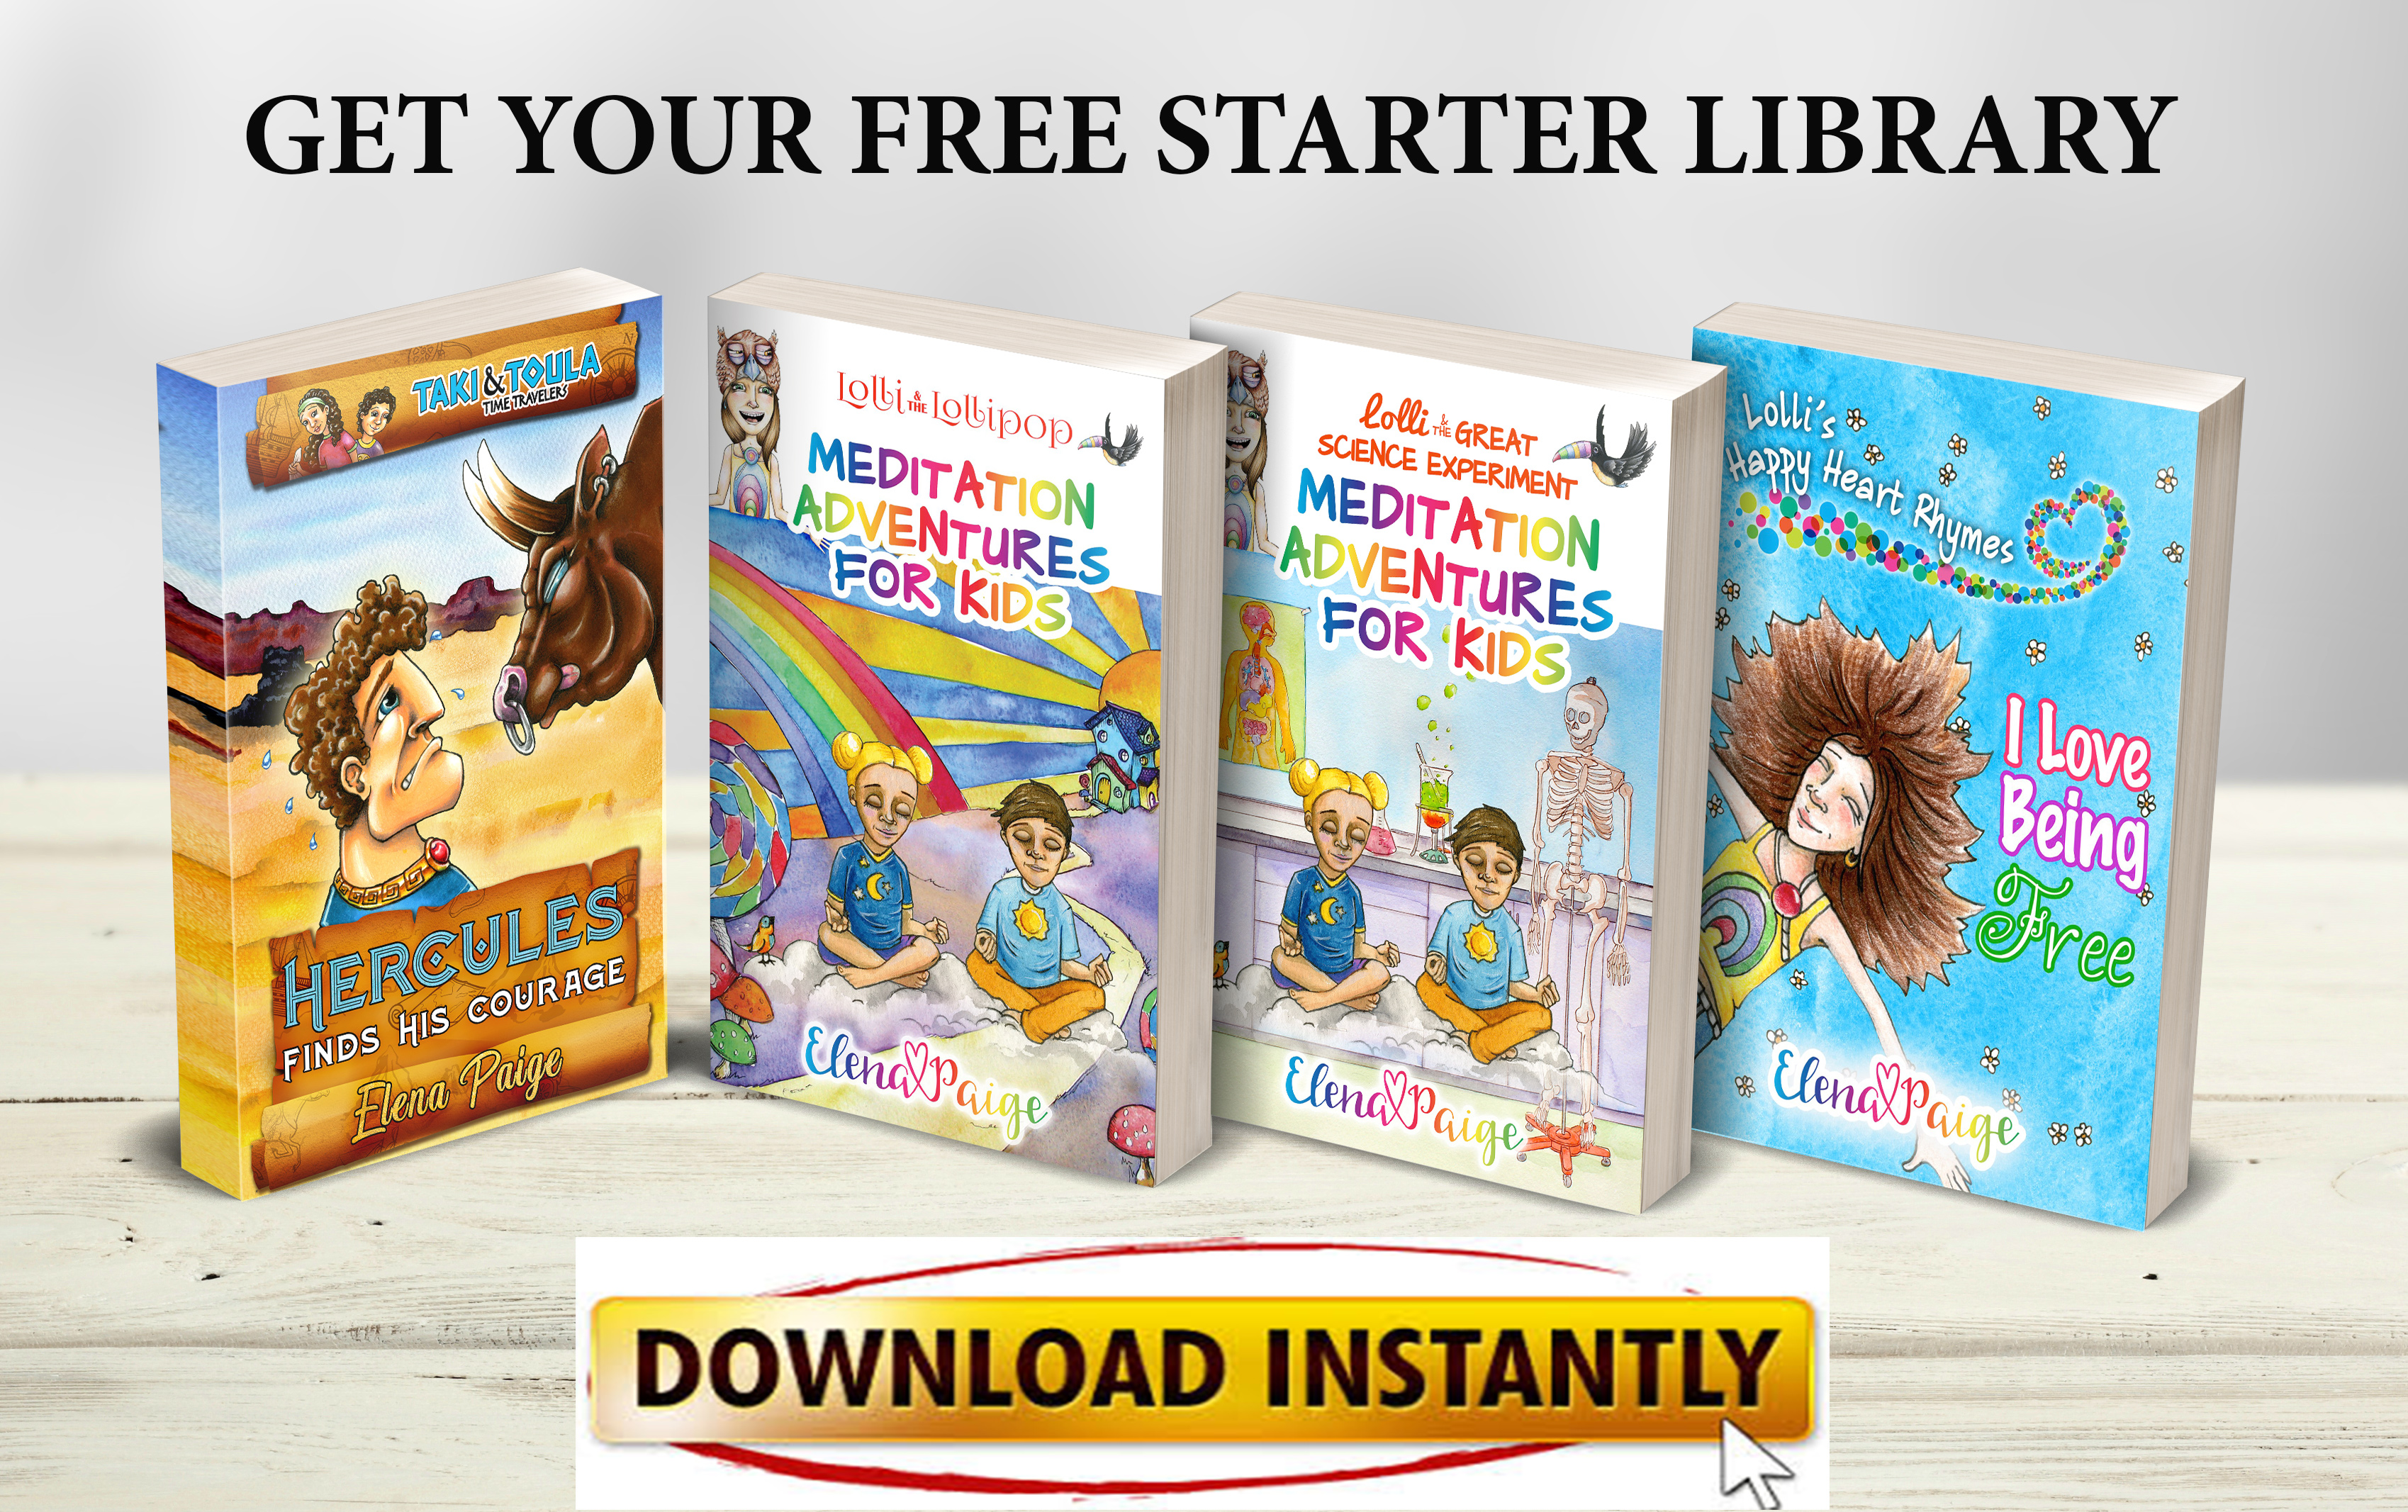 Download Instantly four books